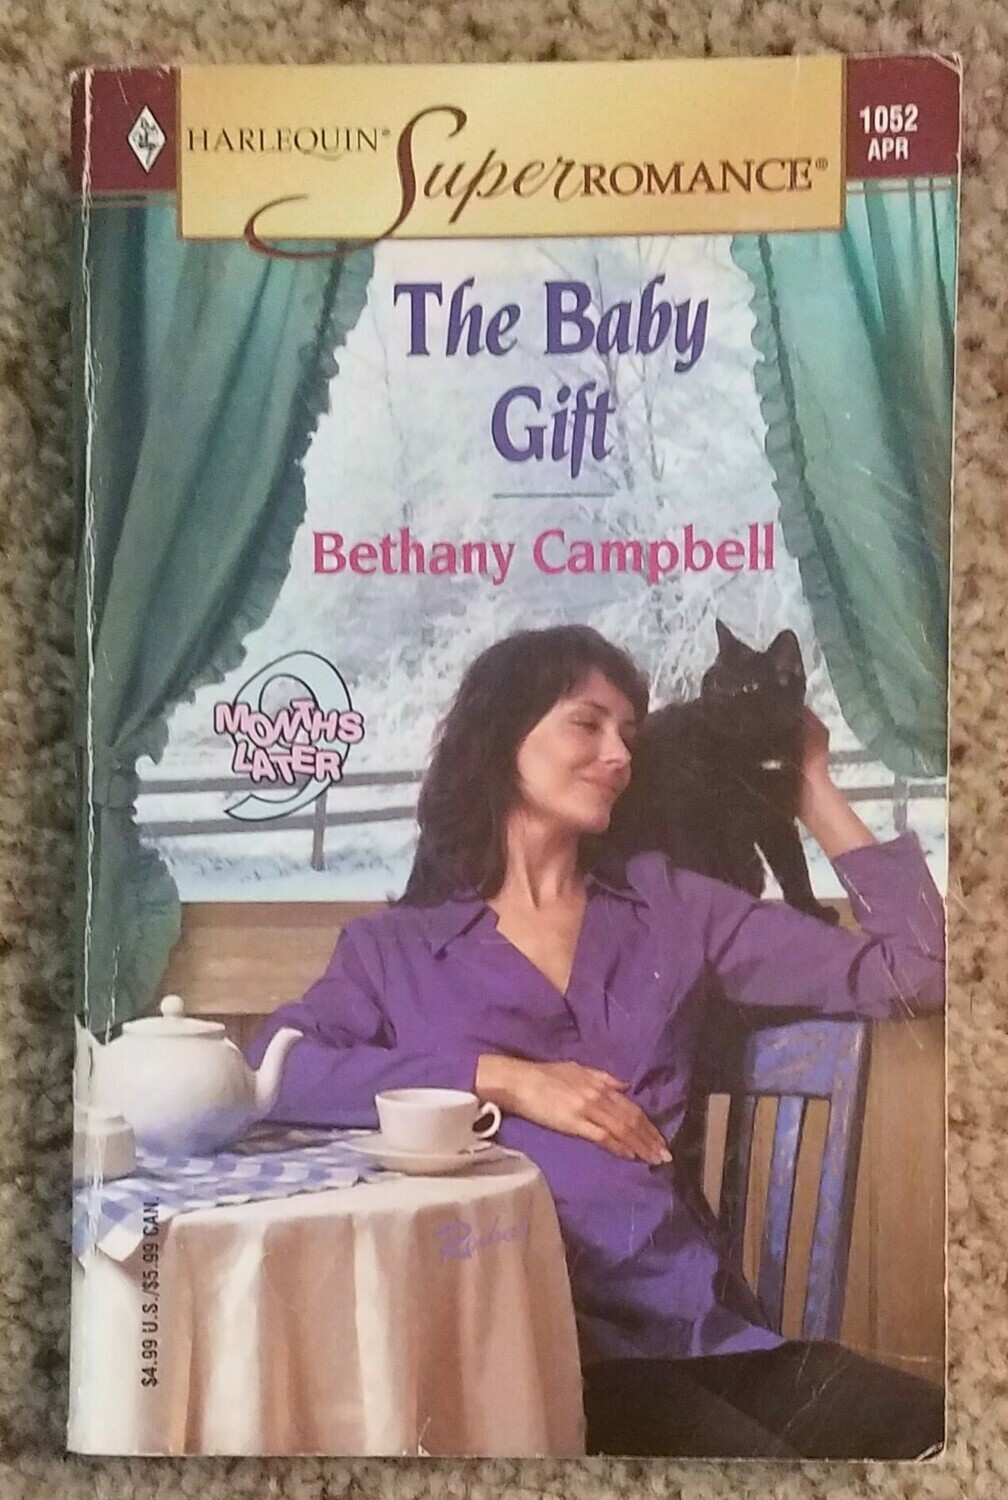 The Baby Gift by Bethany Campbell